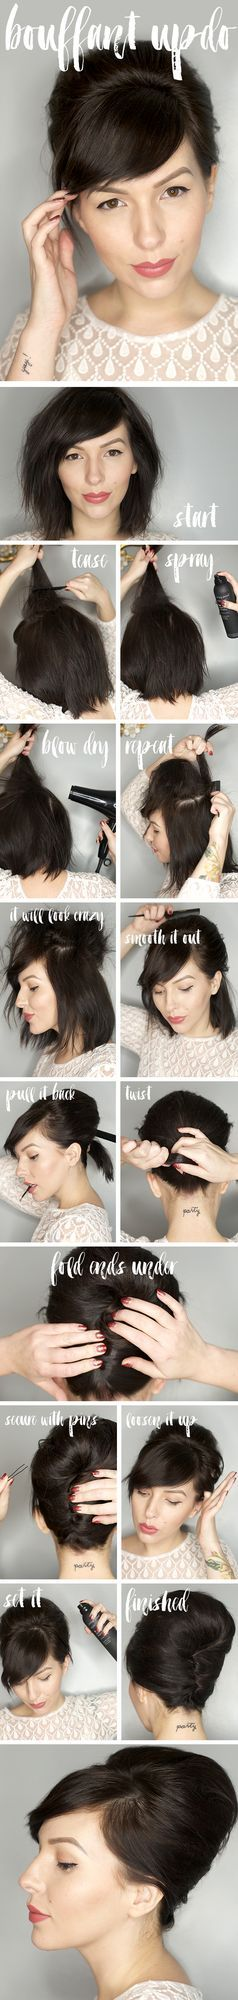 The Easy Updos For Short Hair That Will Amaze Men! easy_updos_short_hair_bangs_5